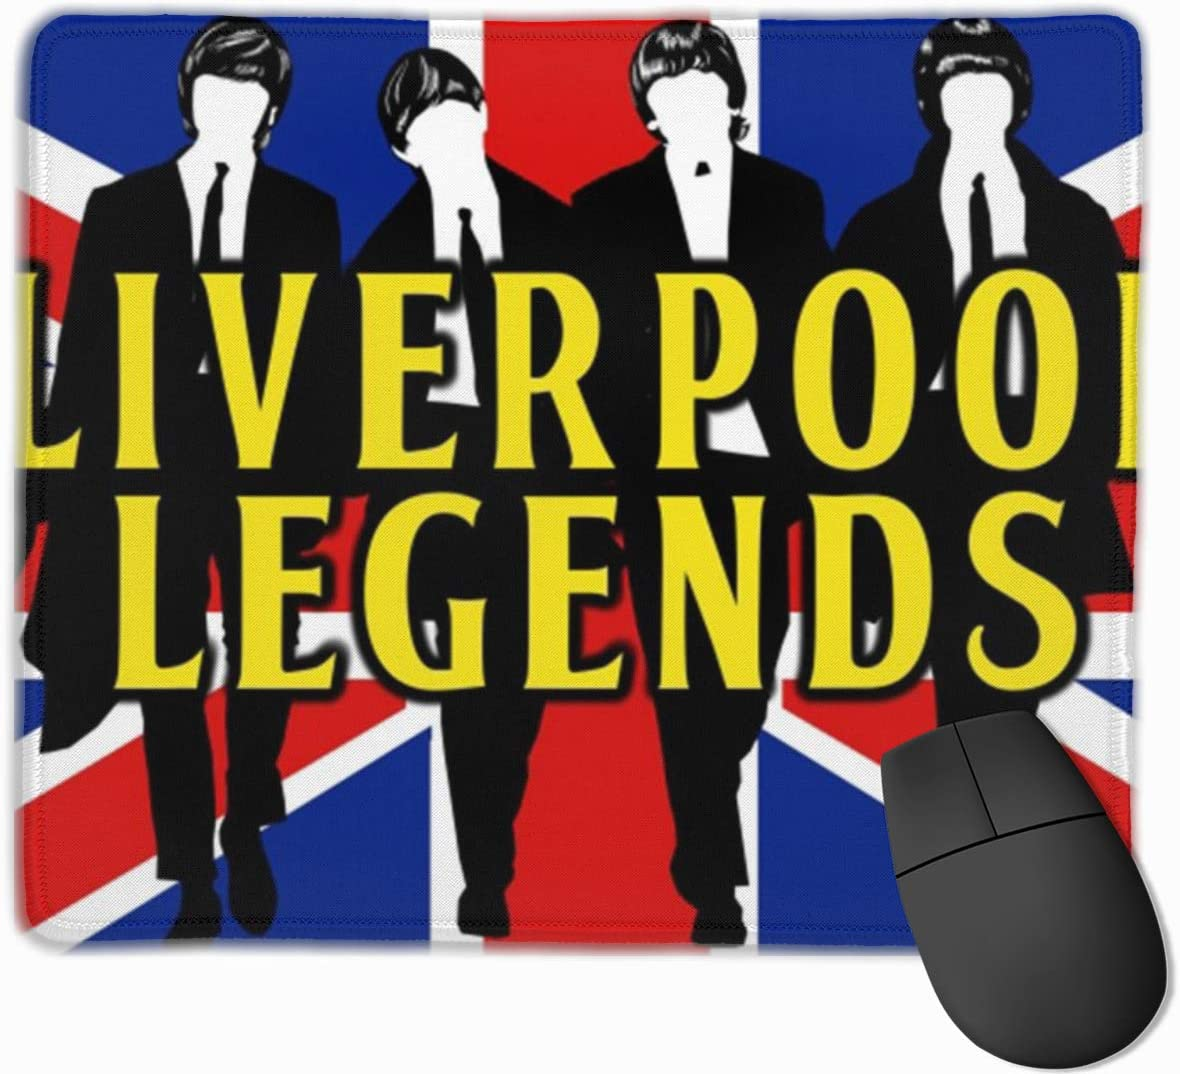 Liverpool-Legends Gaming Mouse Pad Computer Desk Pad Non-Slip Rubber Stitched Edges (9.8x11.8 Inch)